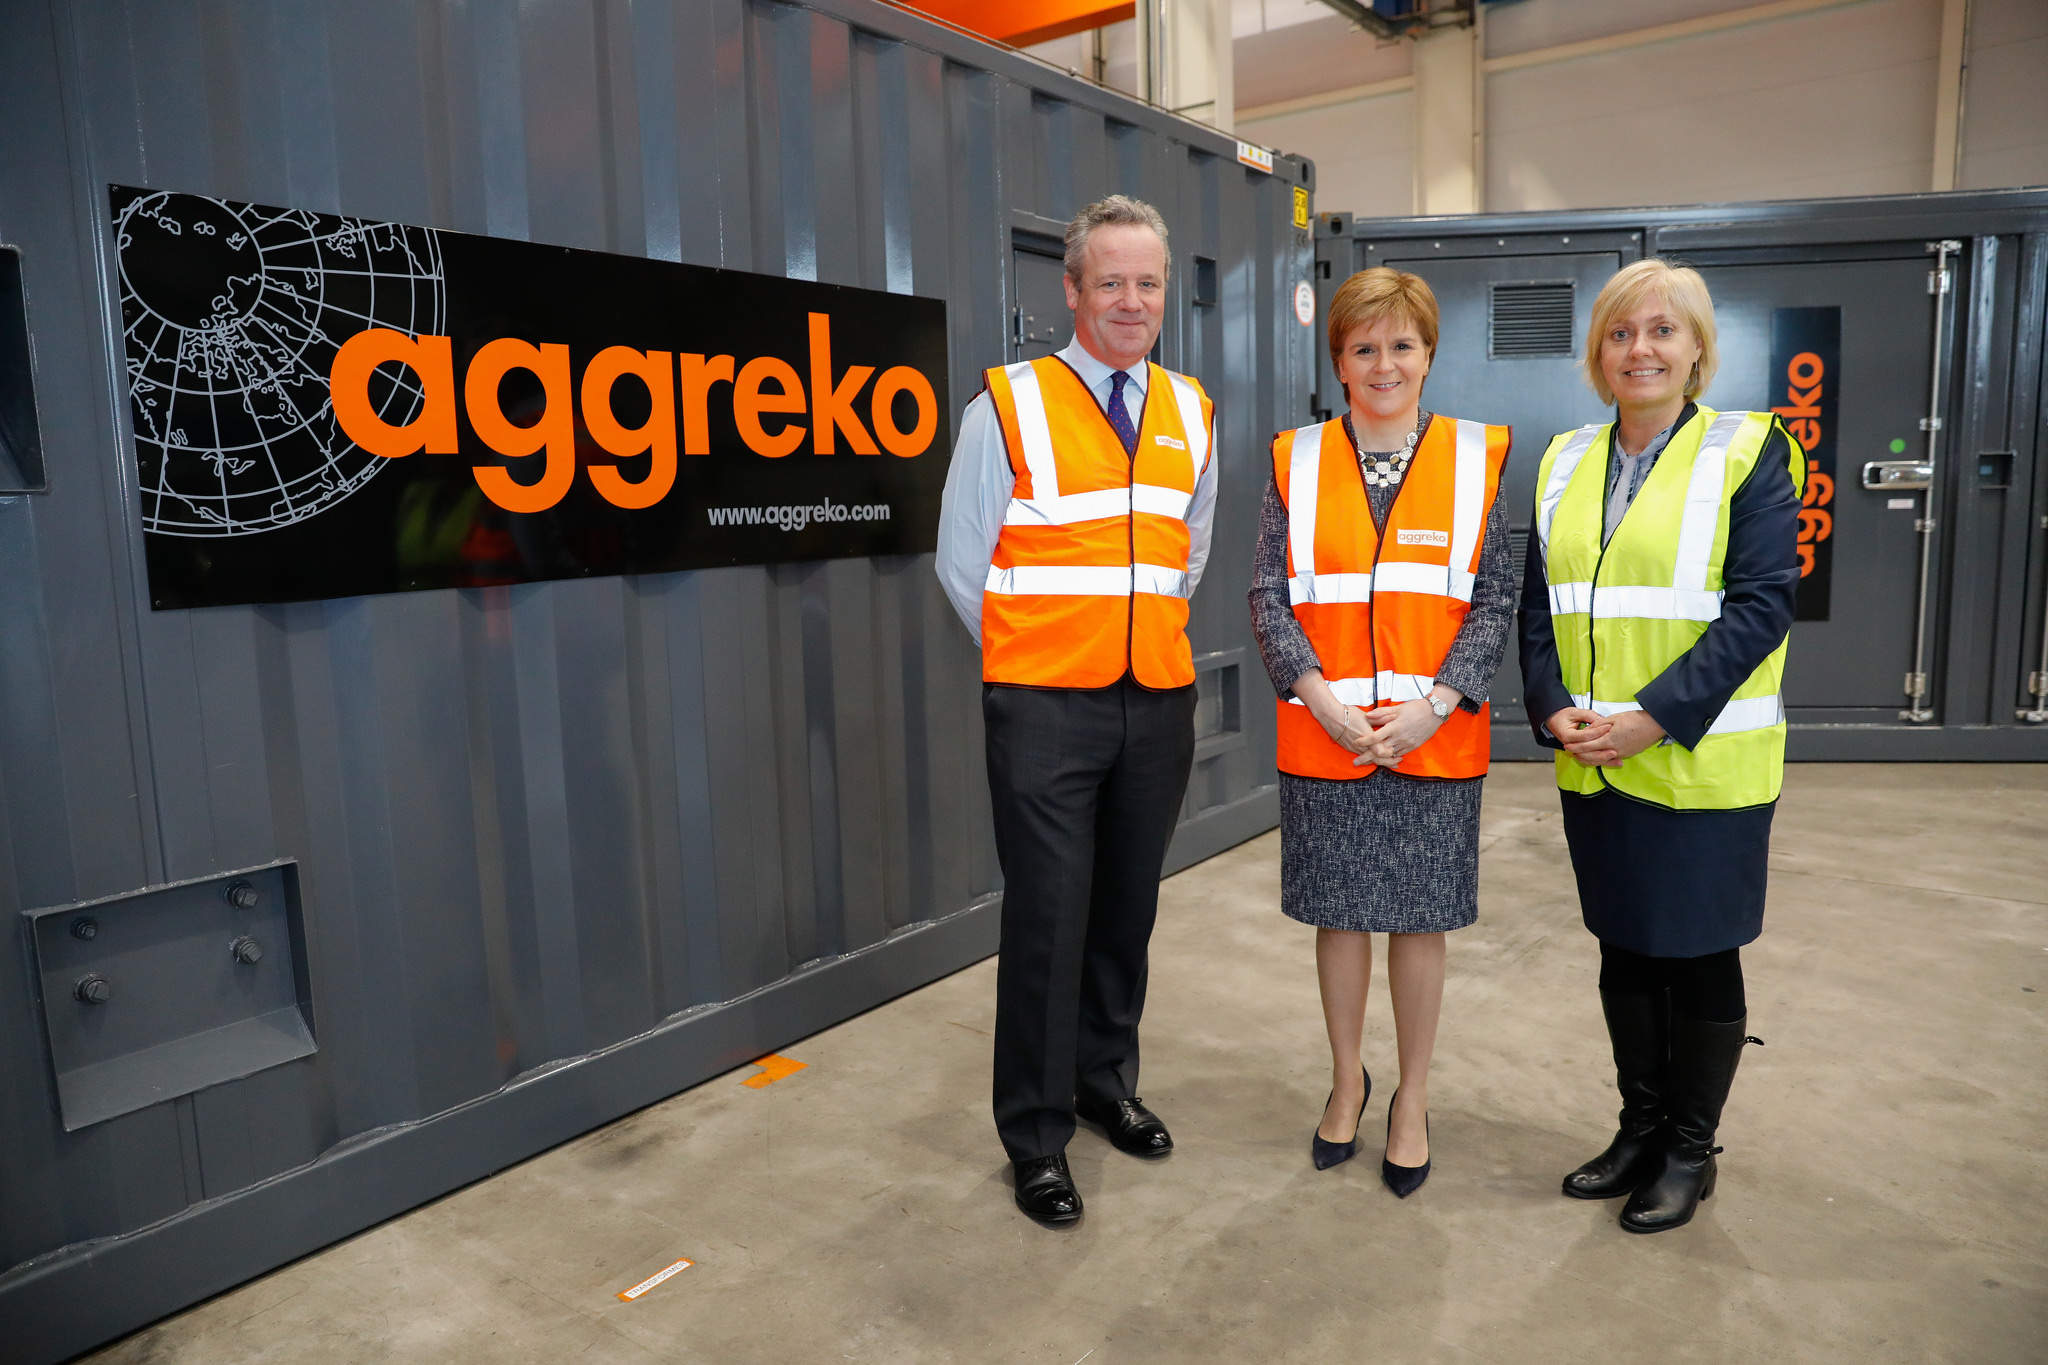 Renewable energy, technology, Nicola Sturgeon, Aggreko